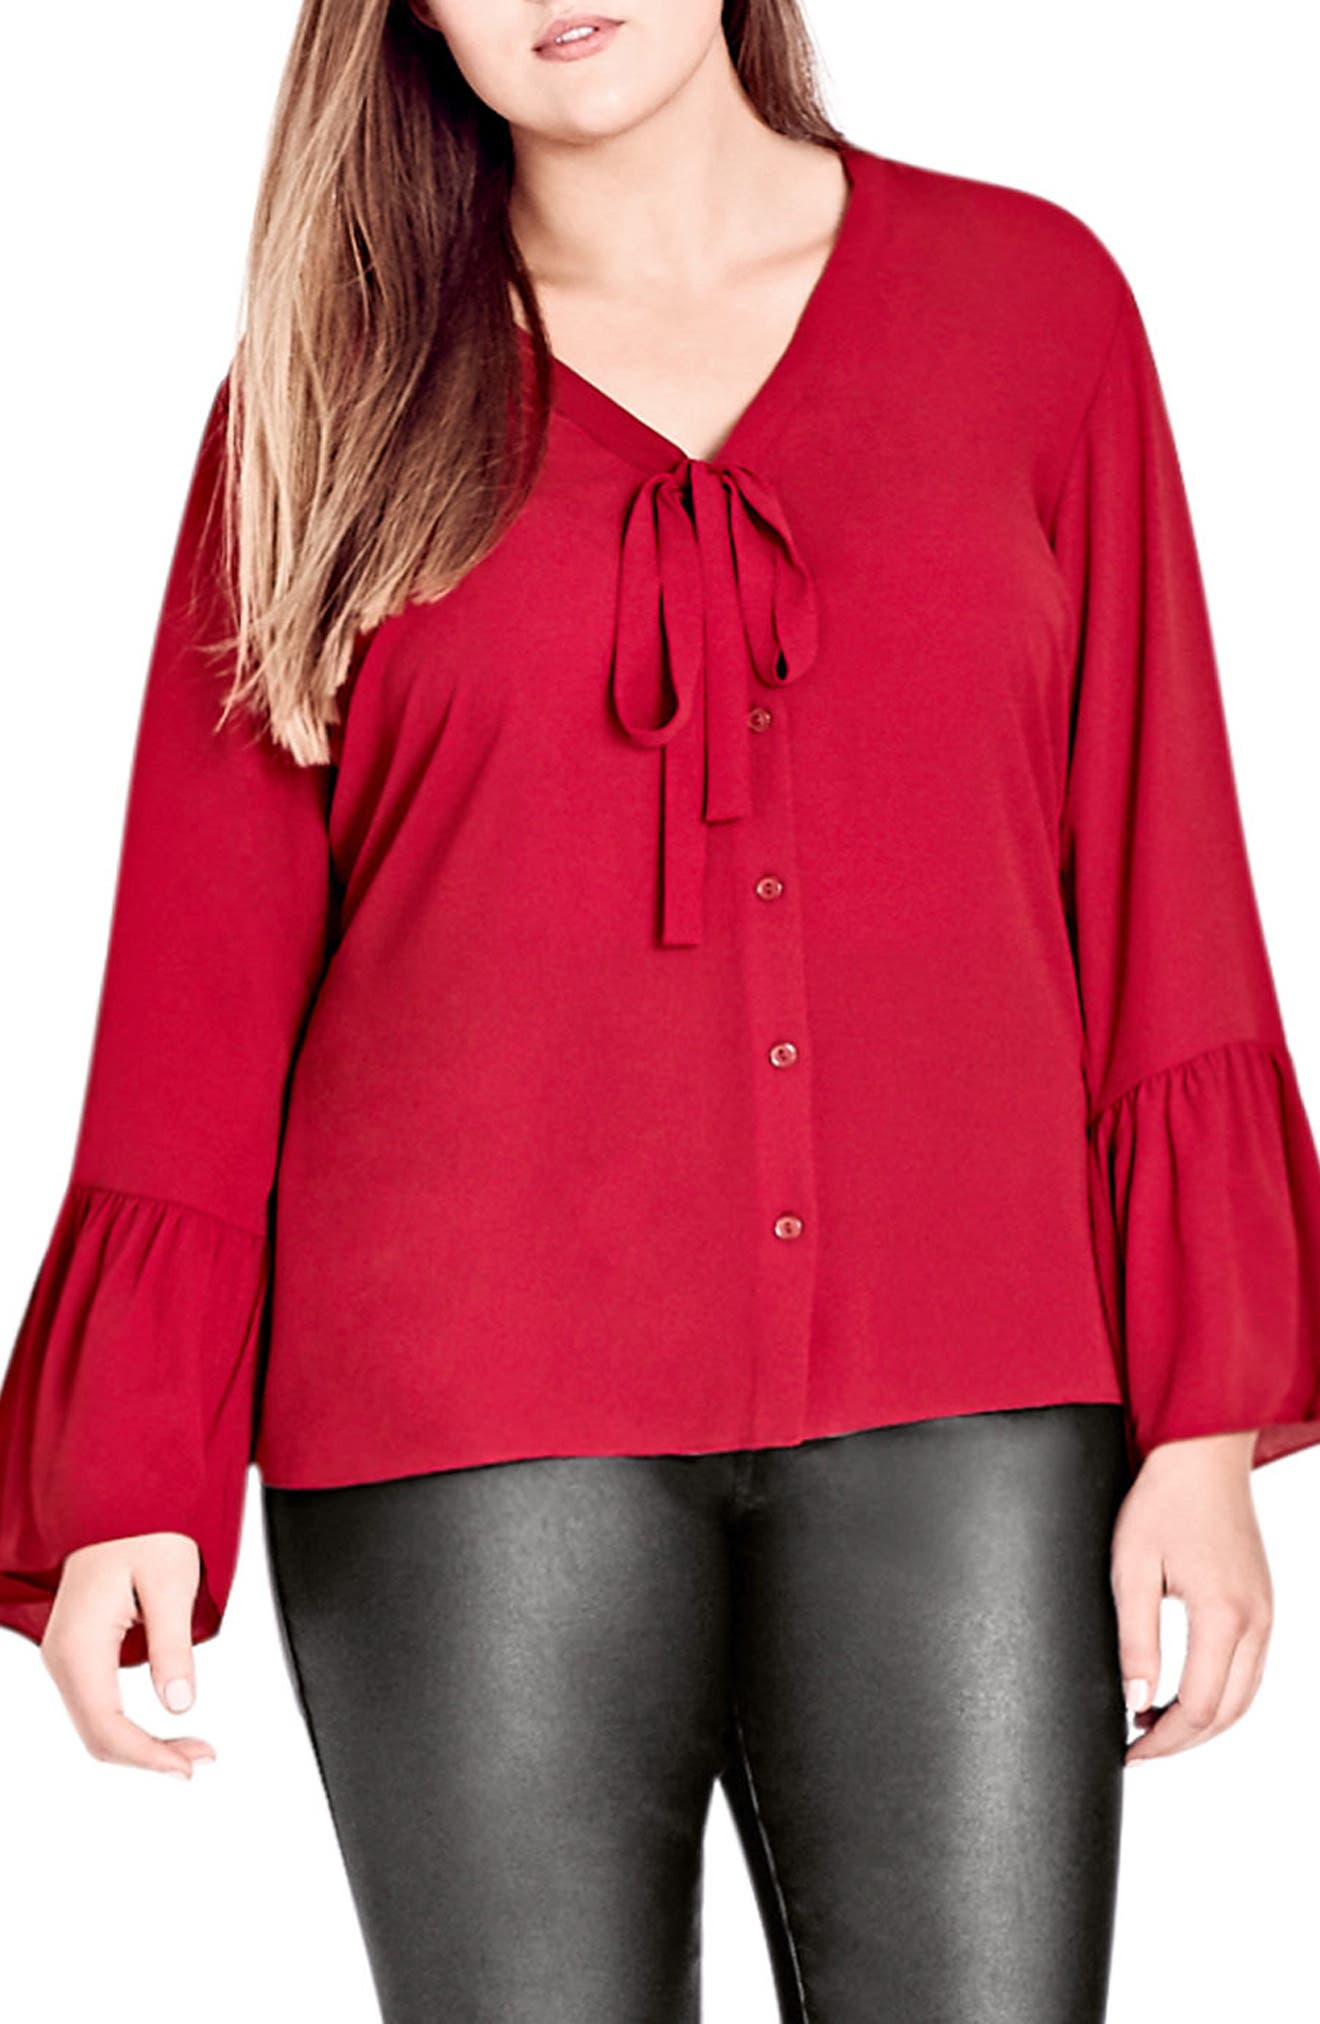 Office Fling Shirt,                         Main,                         color, Red Rose